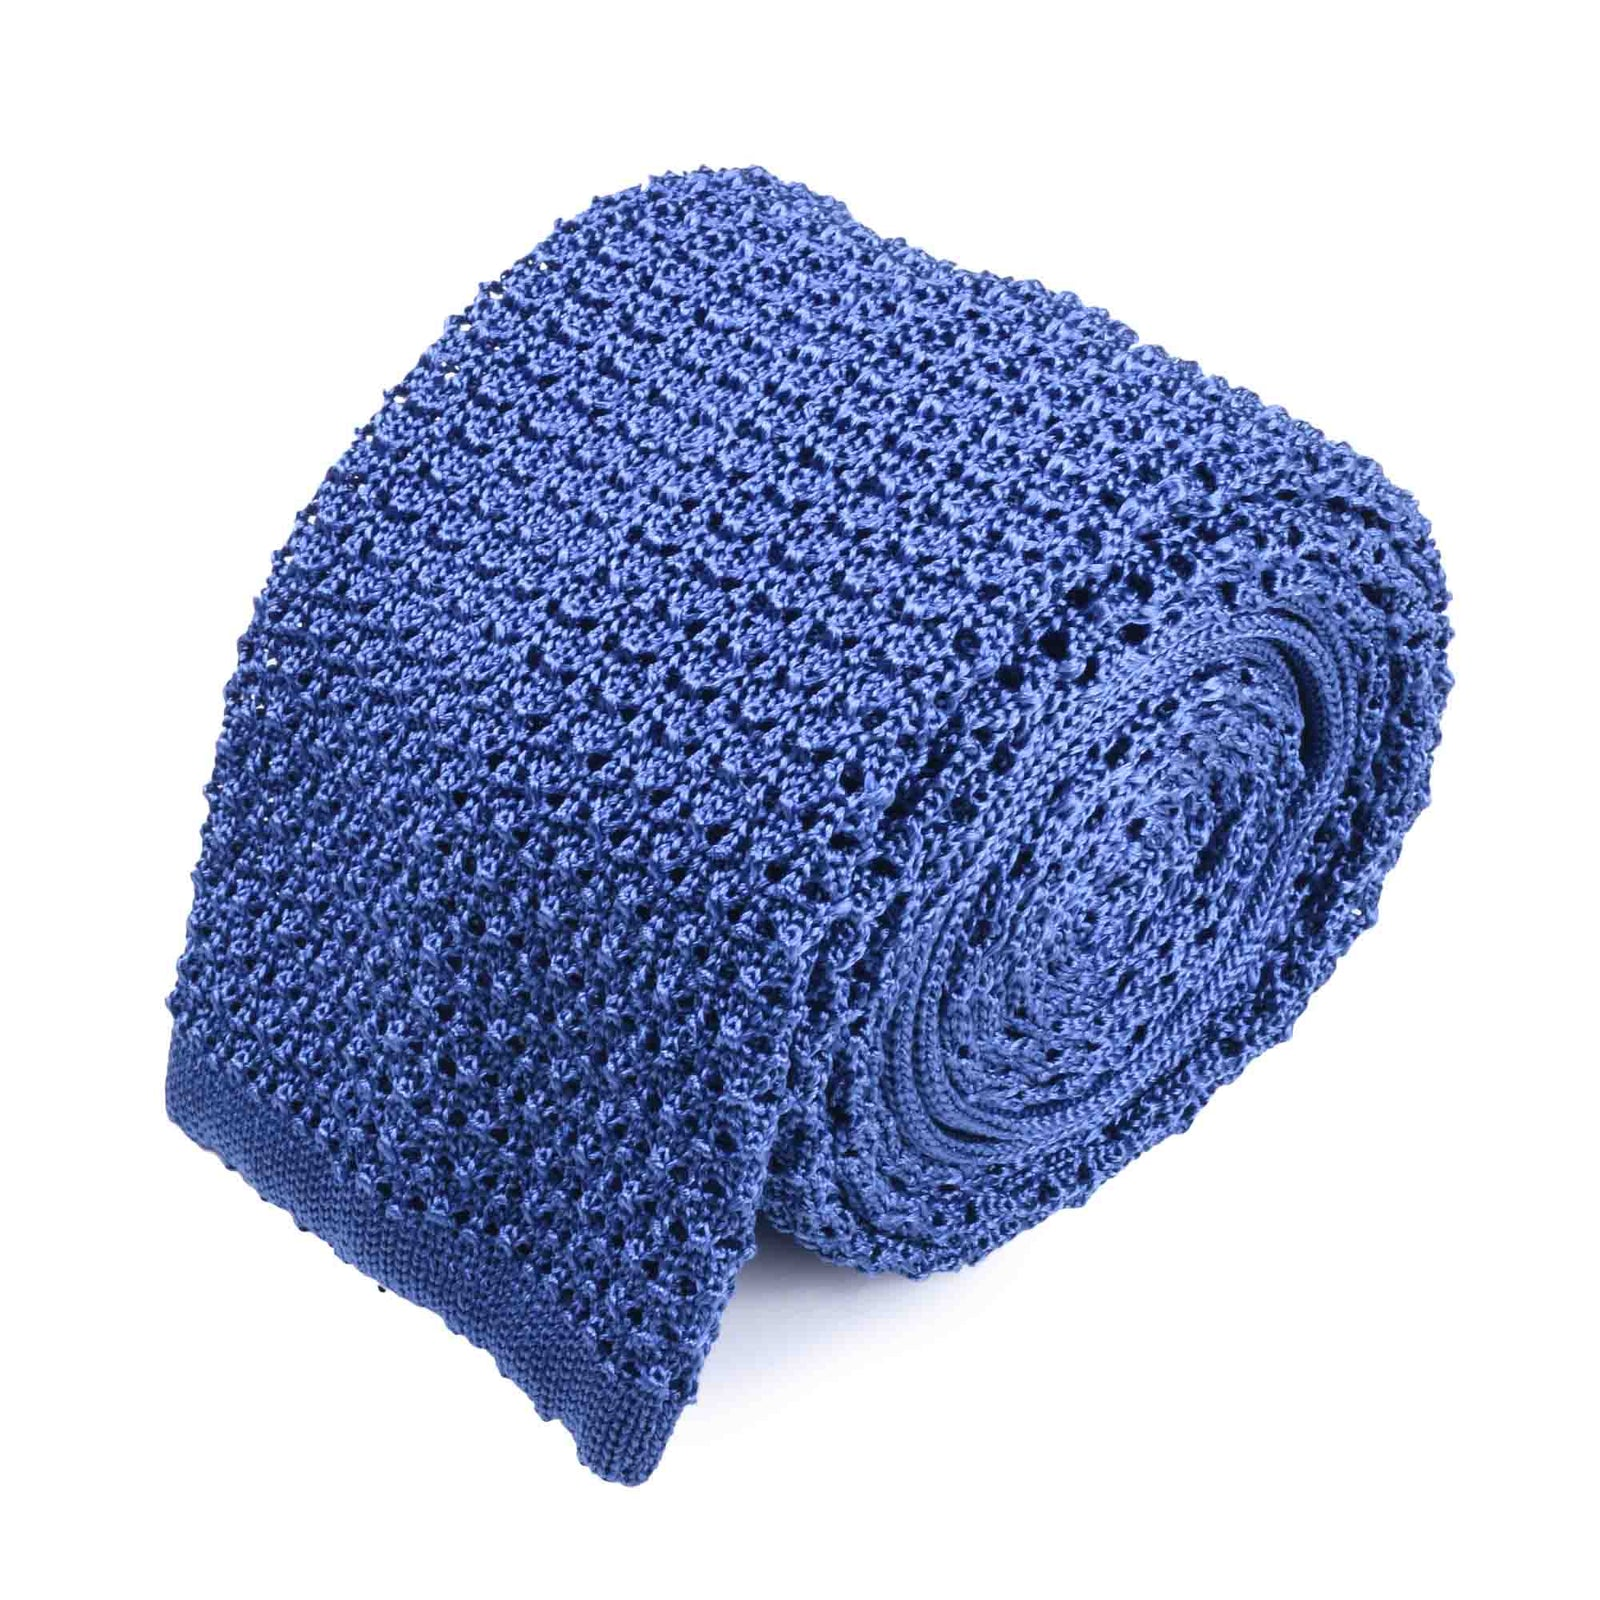 Light Blue Crochet Knitted Tie - serafinesilk